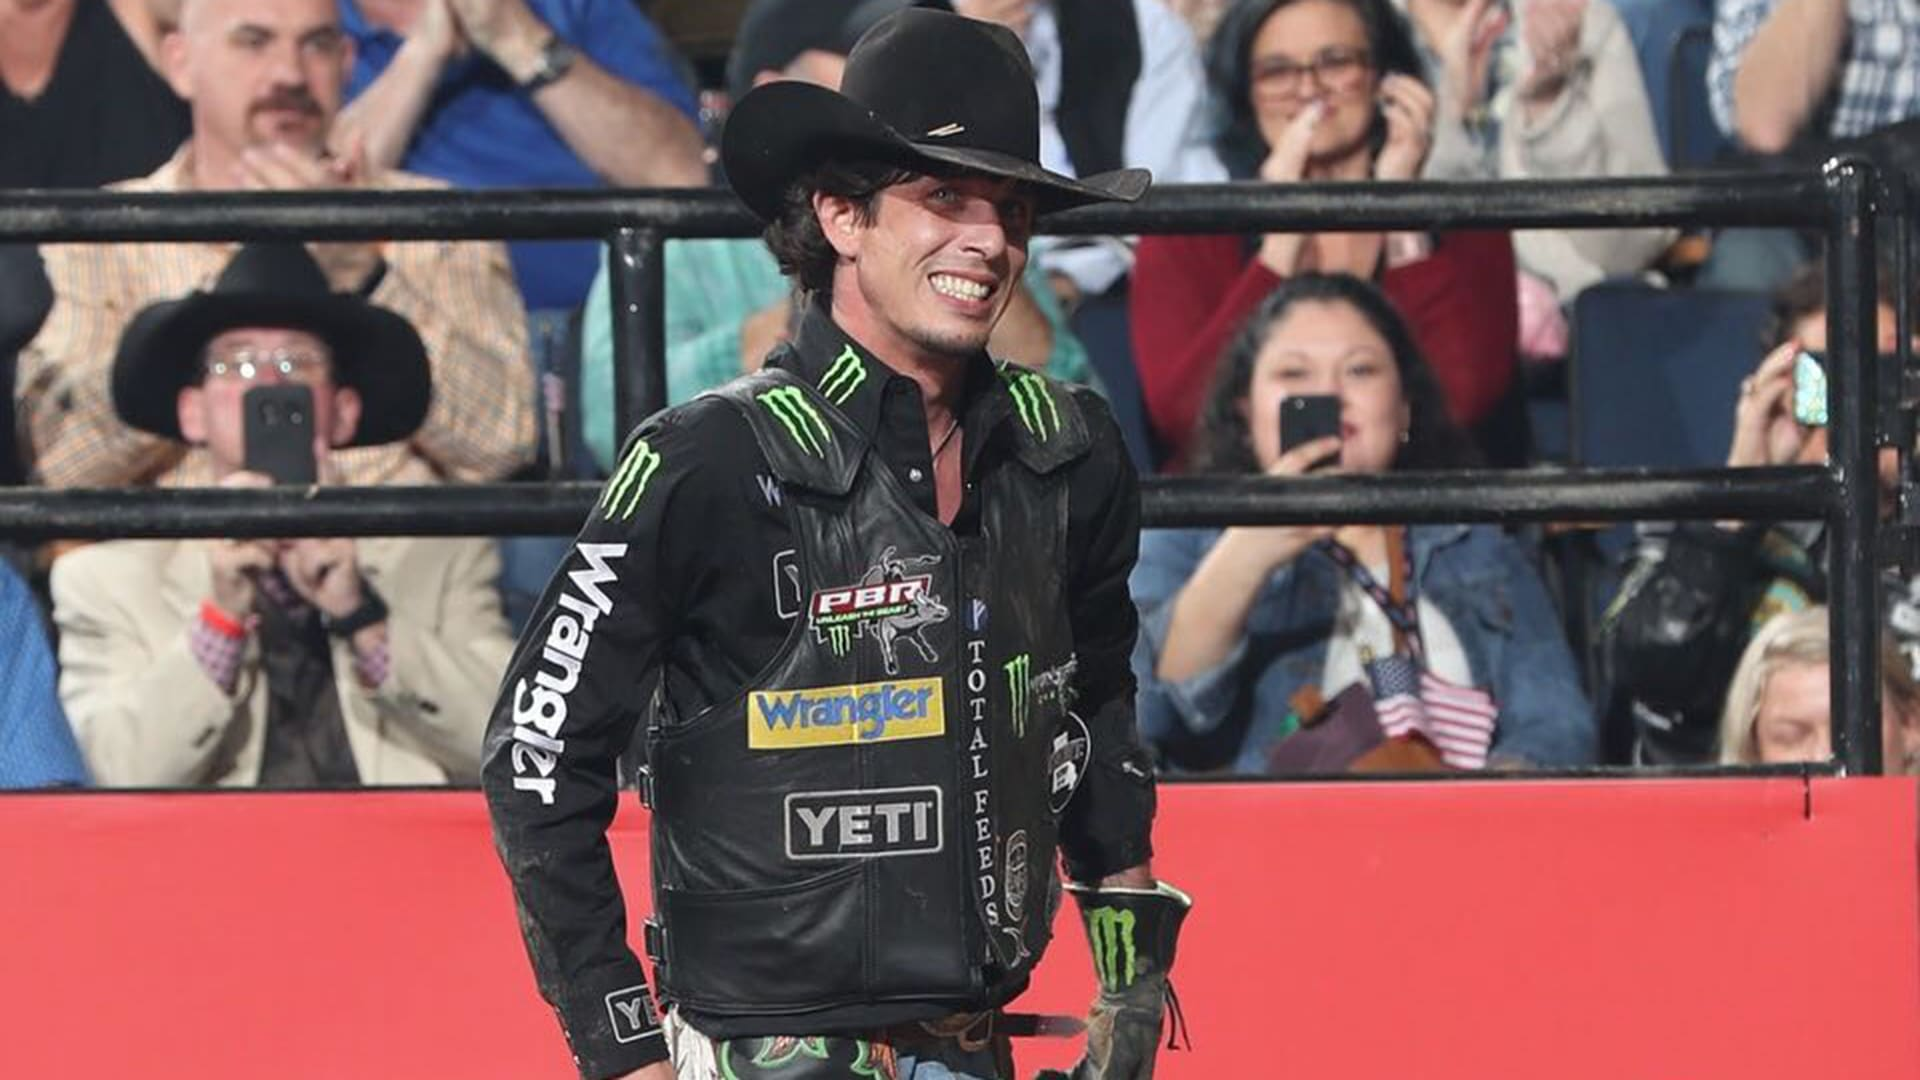 Mauney ties Lee for second-most rides in PBR history